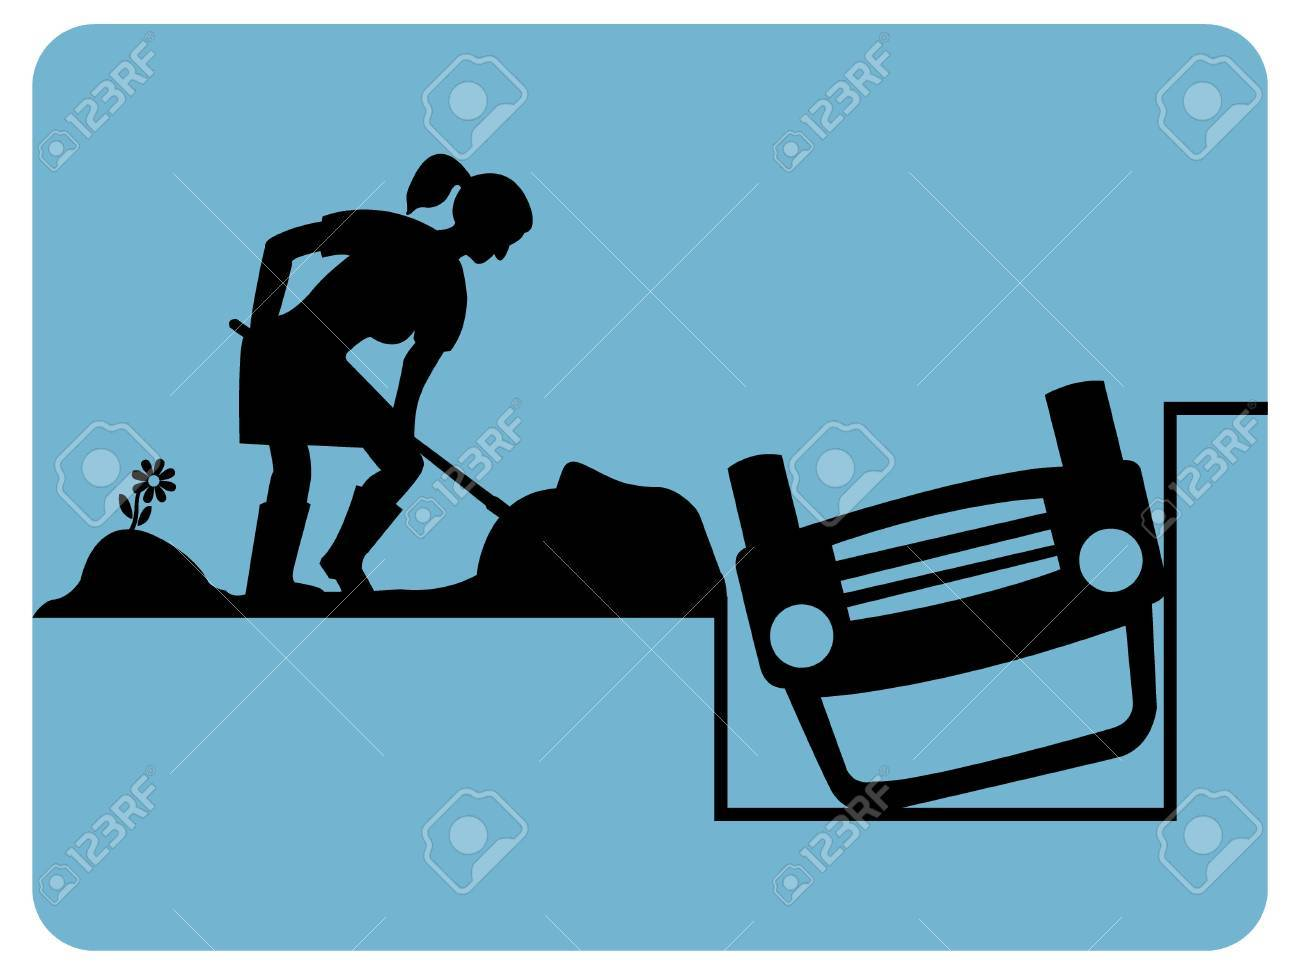 No parking traffic sign woman dig the car Stock Vector - 10014176